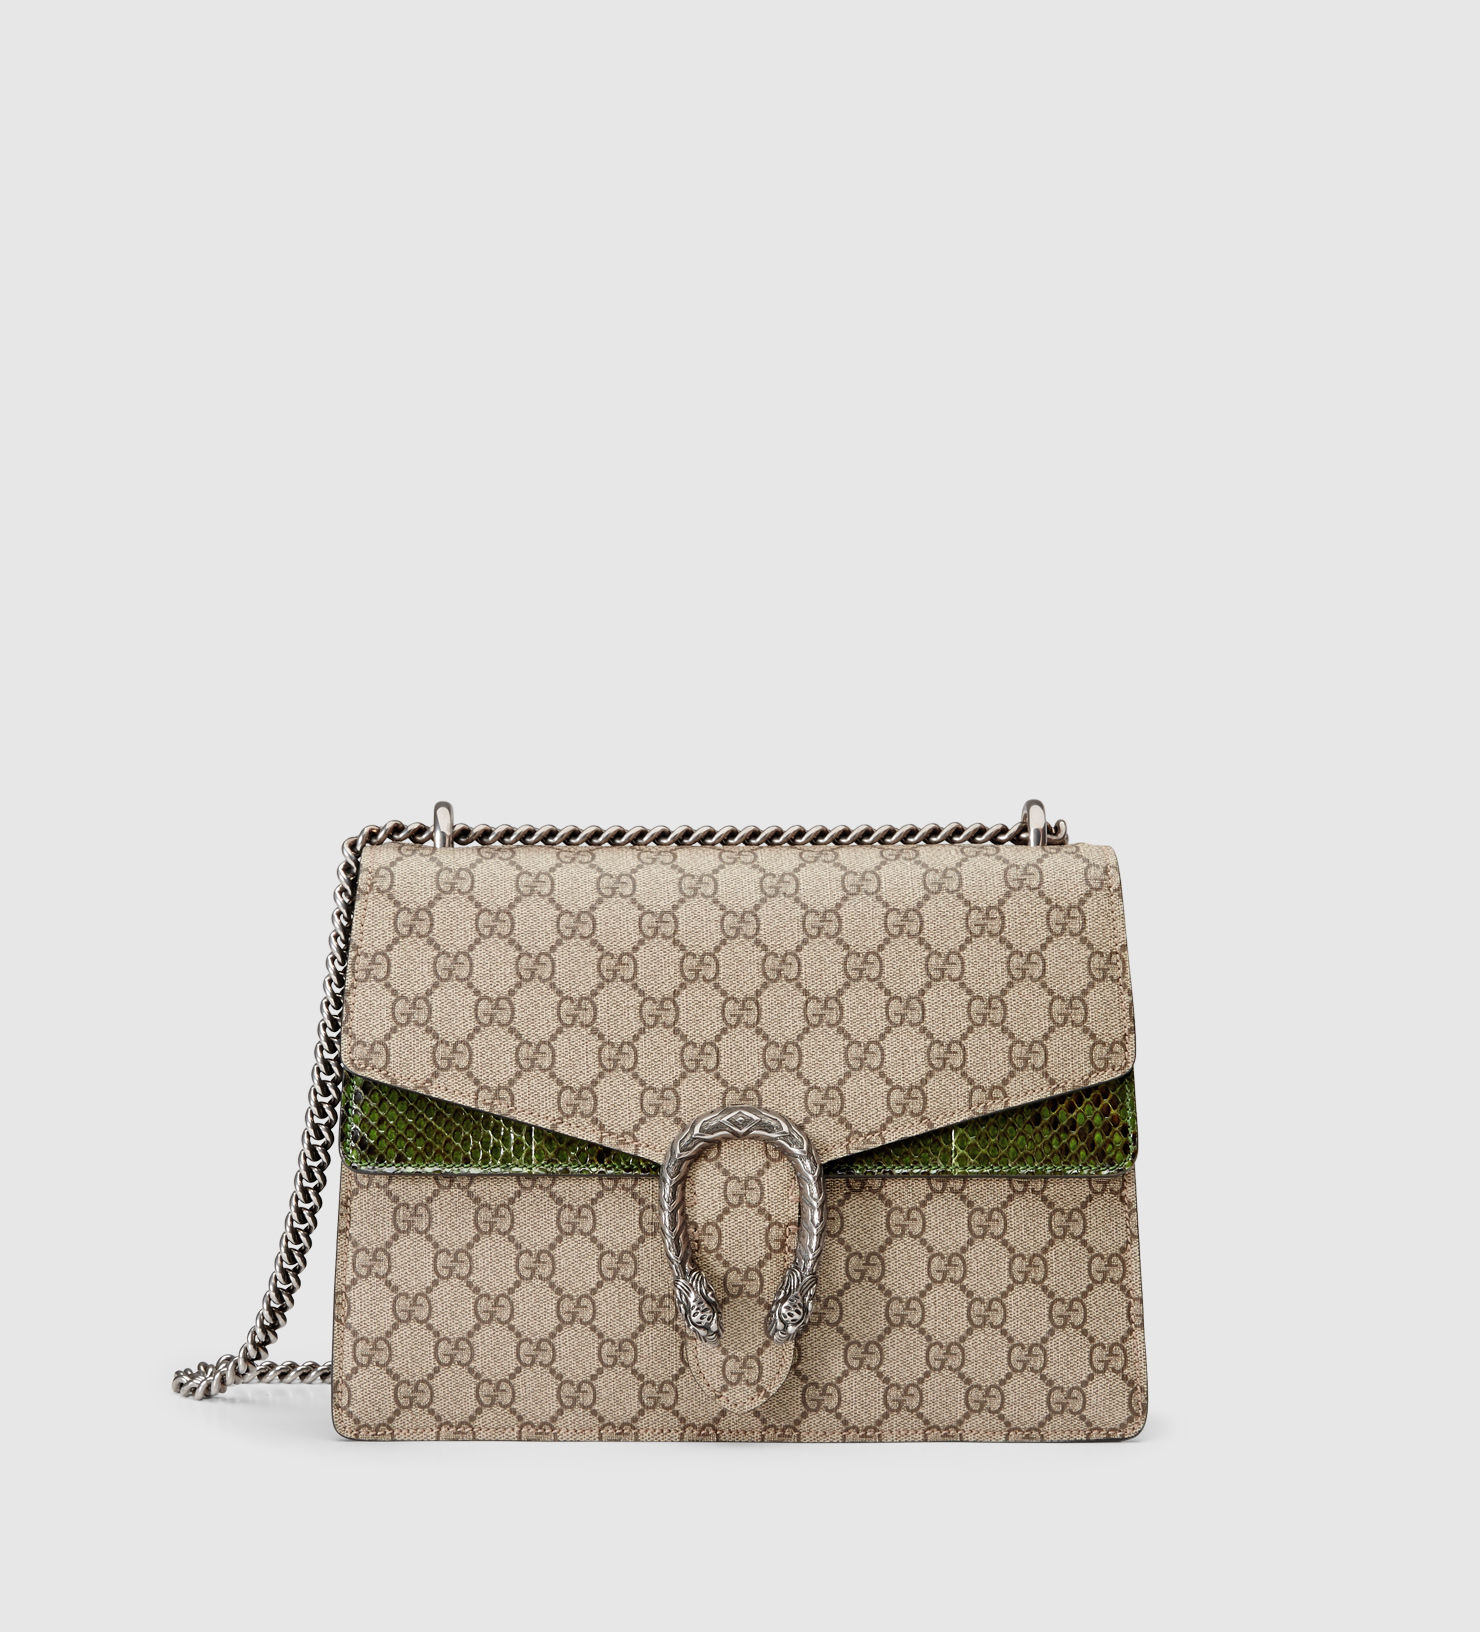 b19c52f6d4 Gucci Dionysus Gg Supreme Shoulder Bag in Natural - Lyst